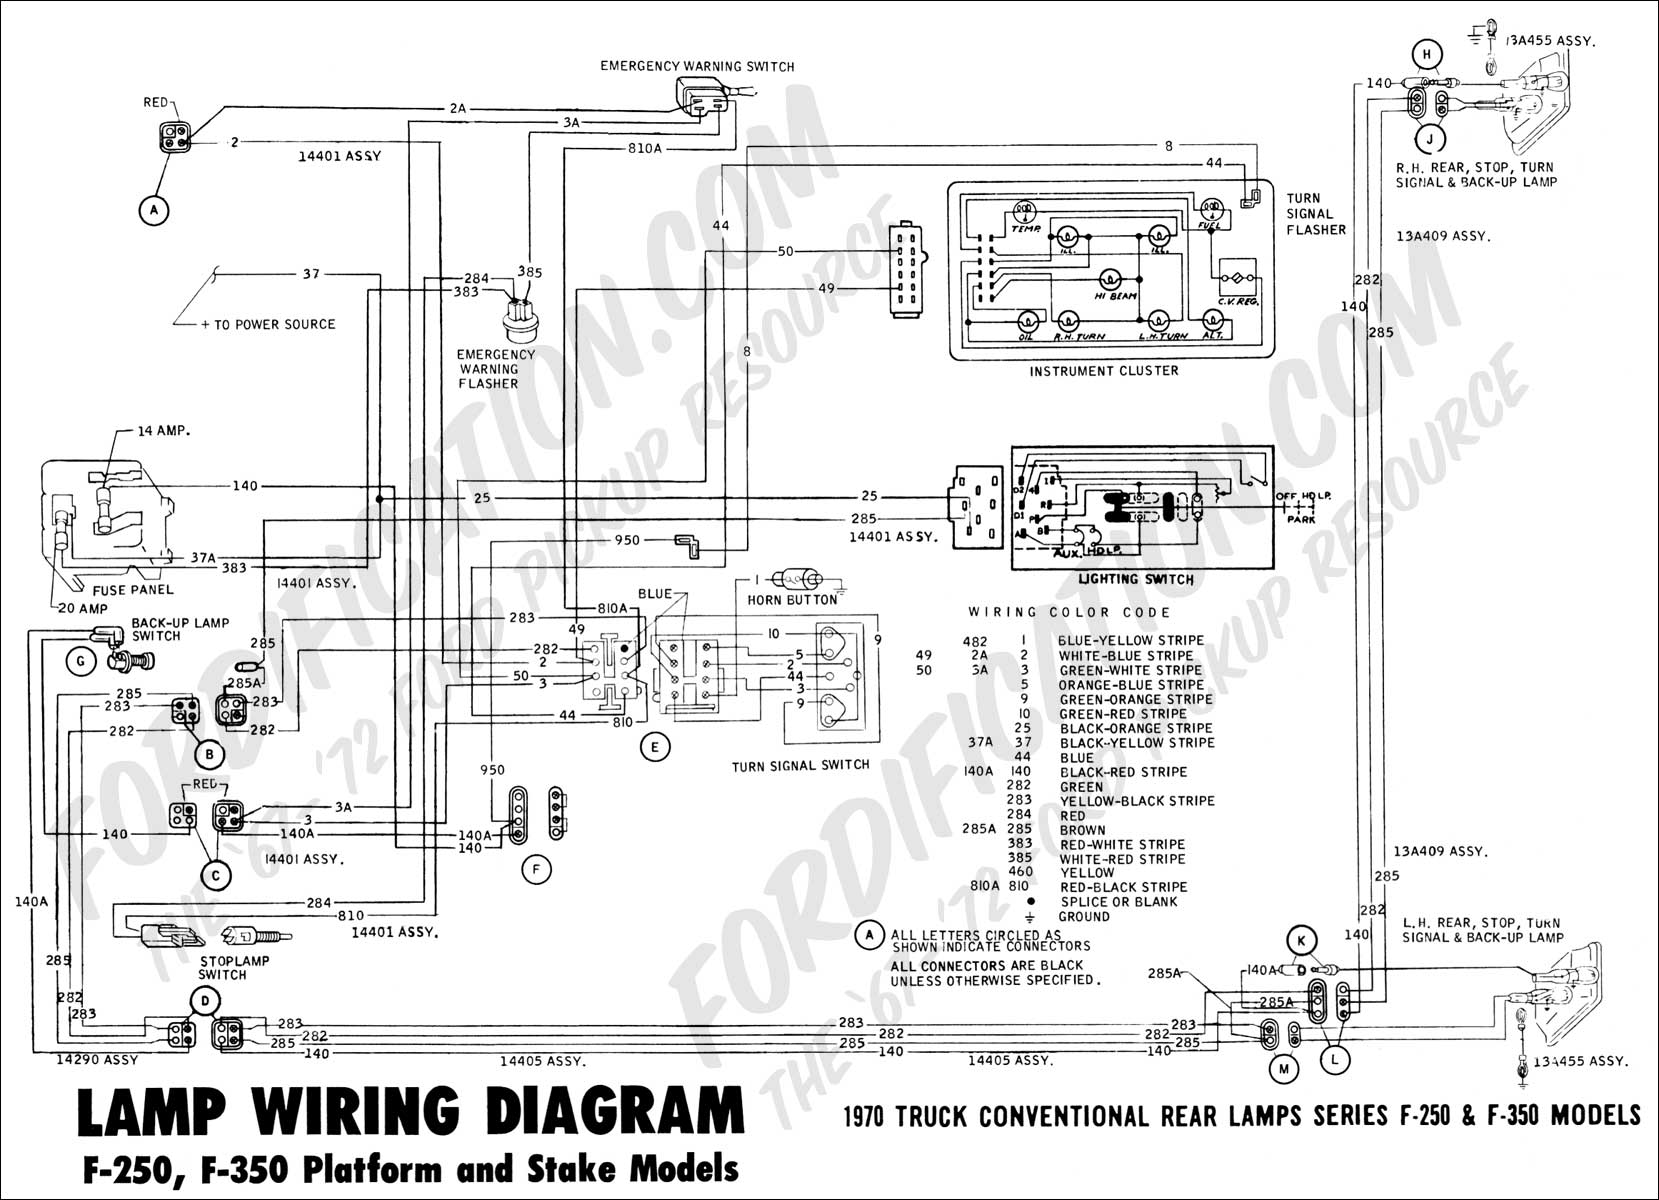 hight resolution of 02 f150 wiring diagram manual e book 02 f150 wiring diagram 02 f150 wiring diagram